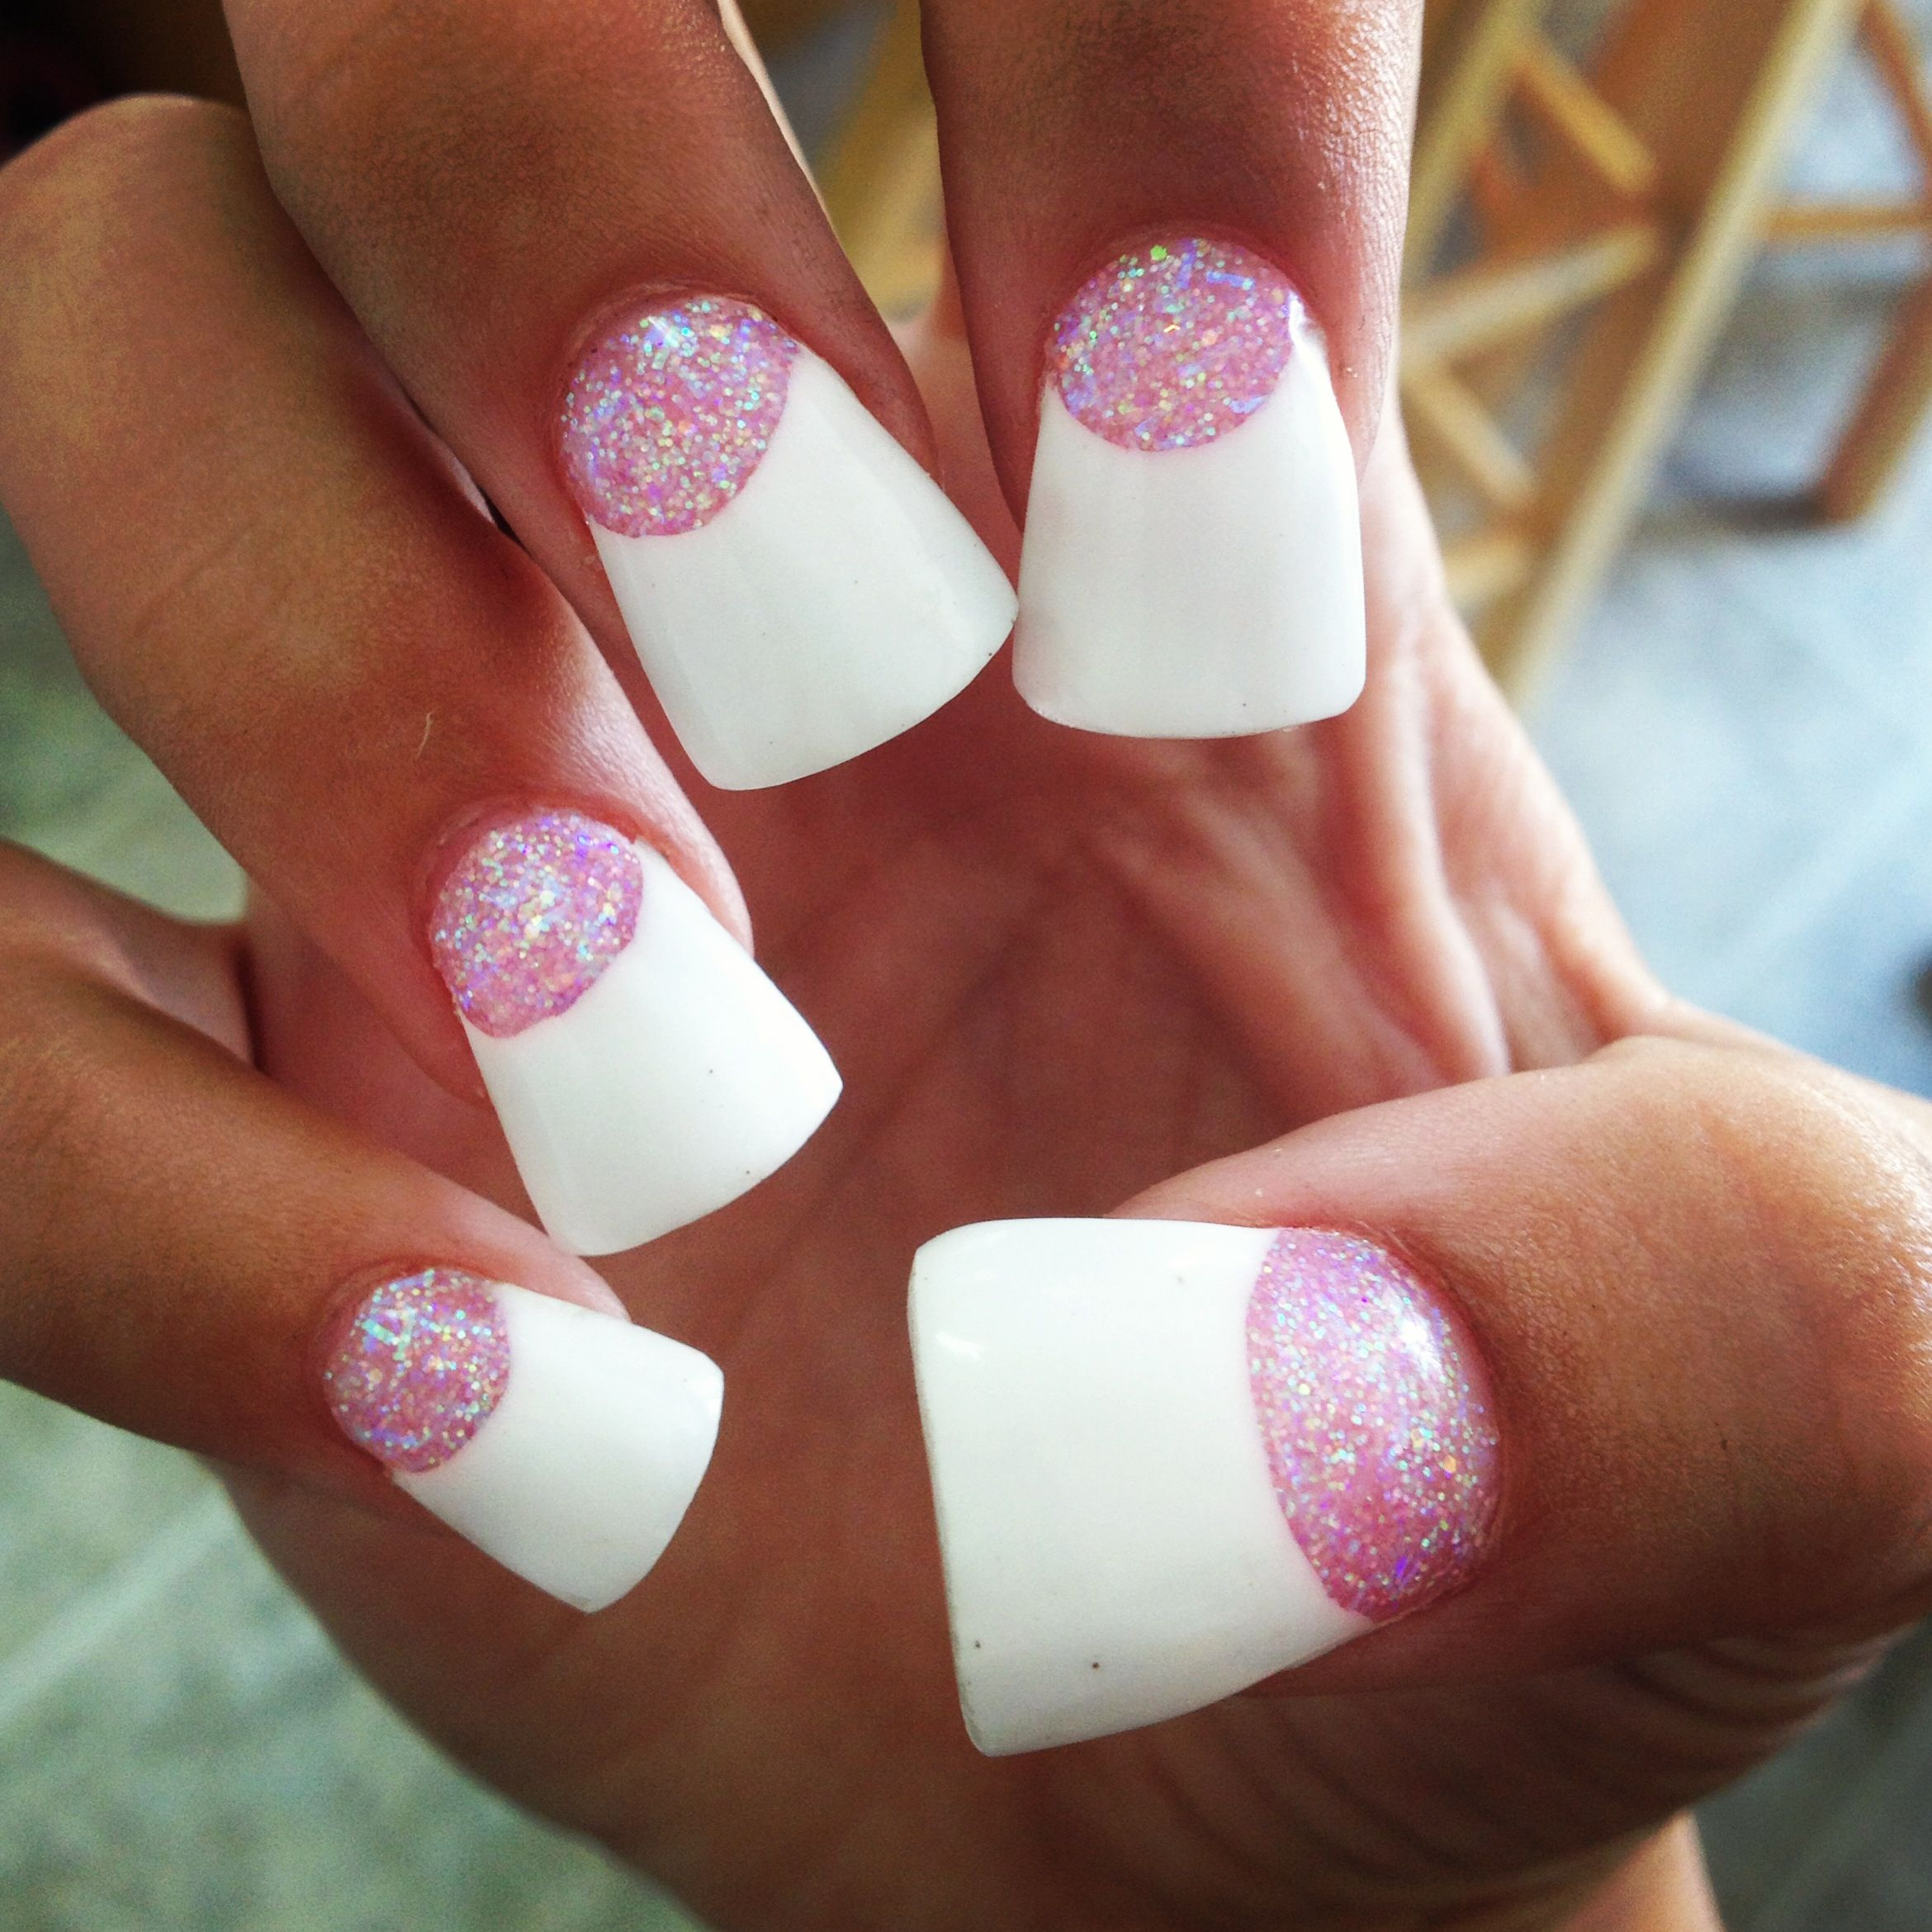 Duck nails! Quack! Yes they are supposed to be like this! | Beauty ...